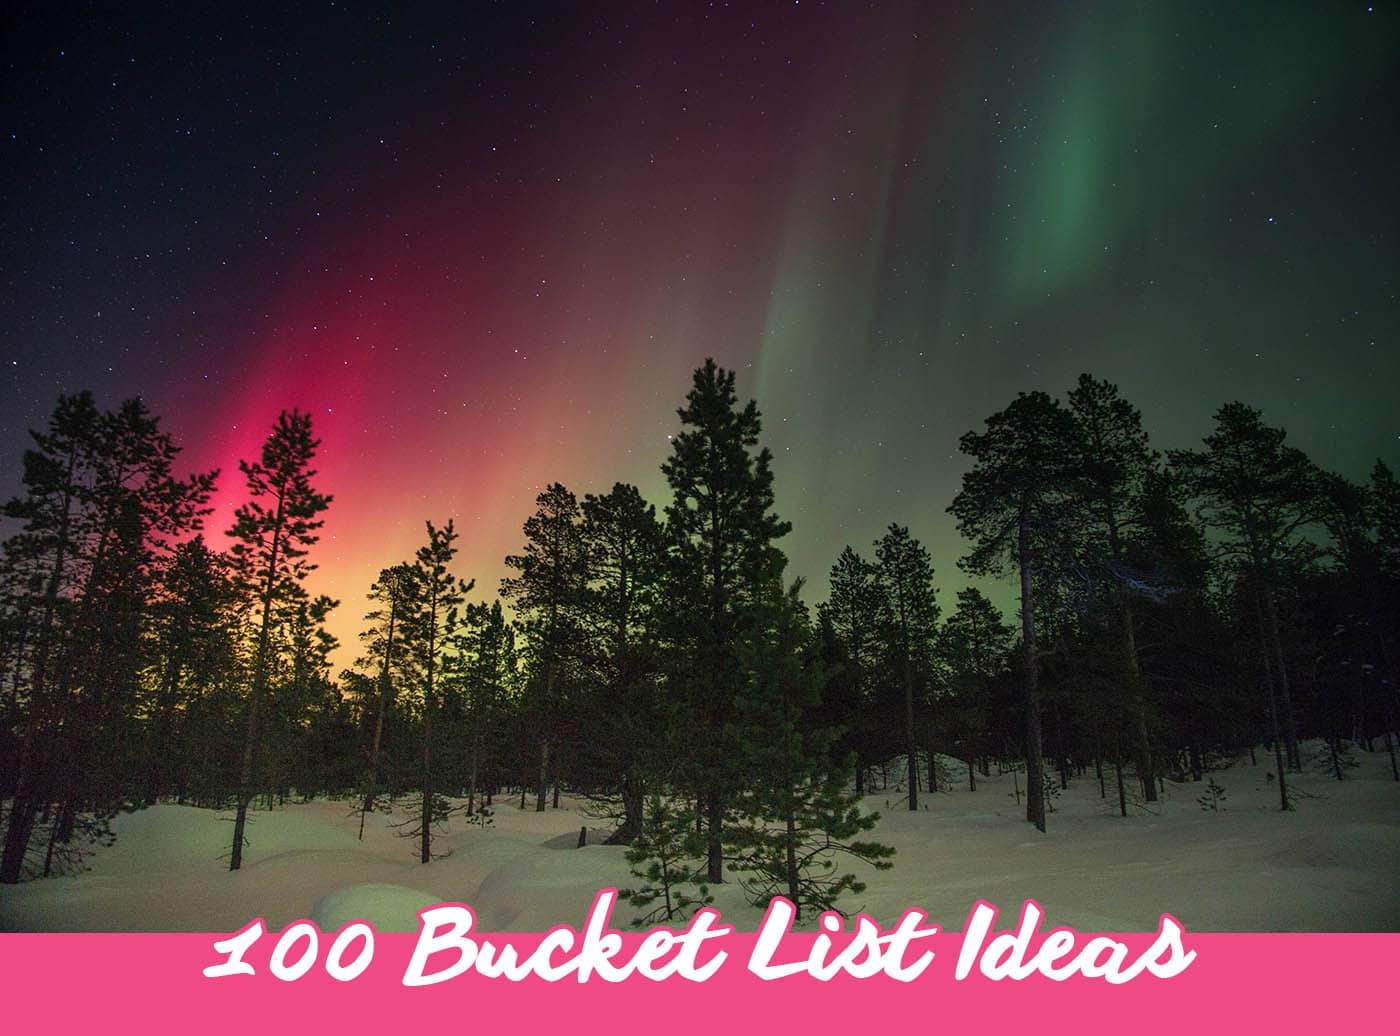 100 bucket list ideas for things to do before you die | Bucket List Inspiration & Ideas